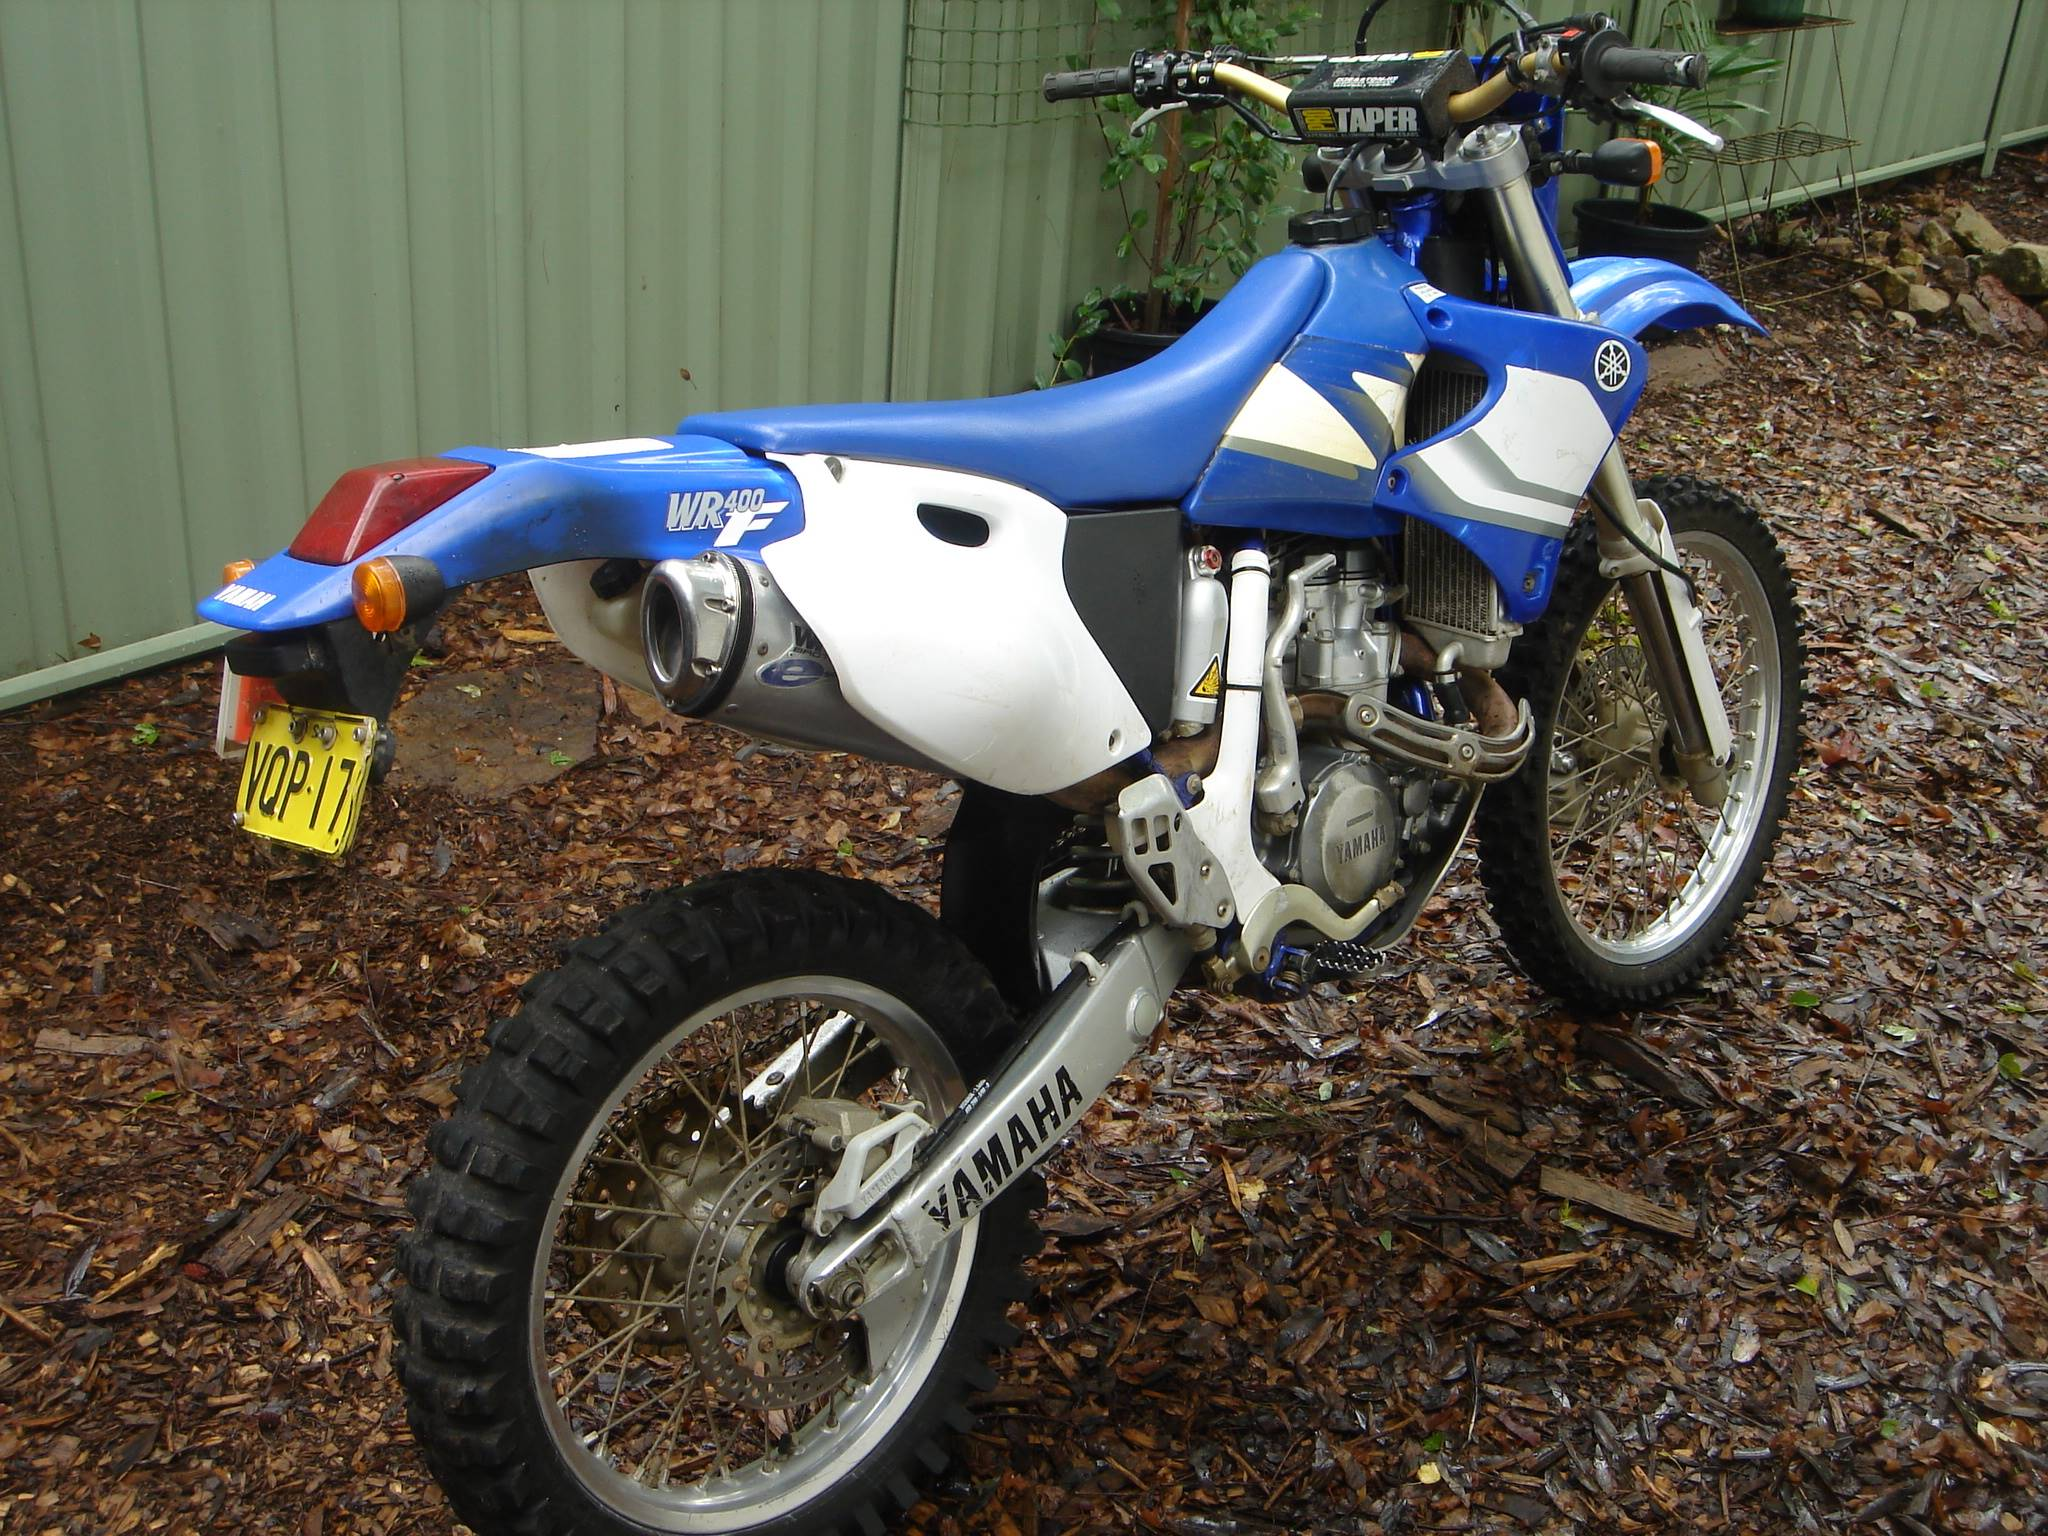 Yamaha WR 400 Trail dirt motorcross bike